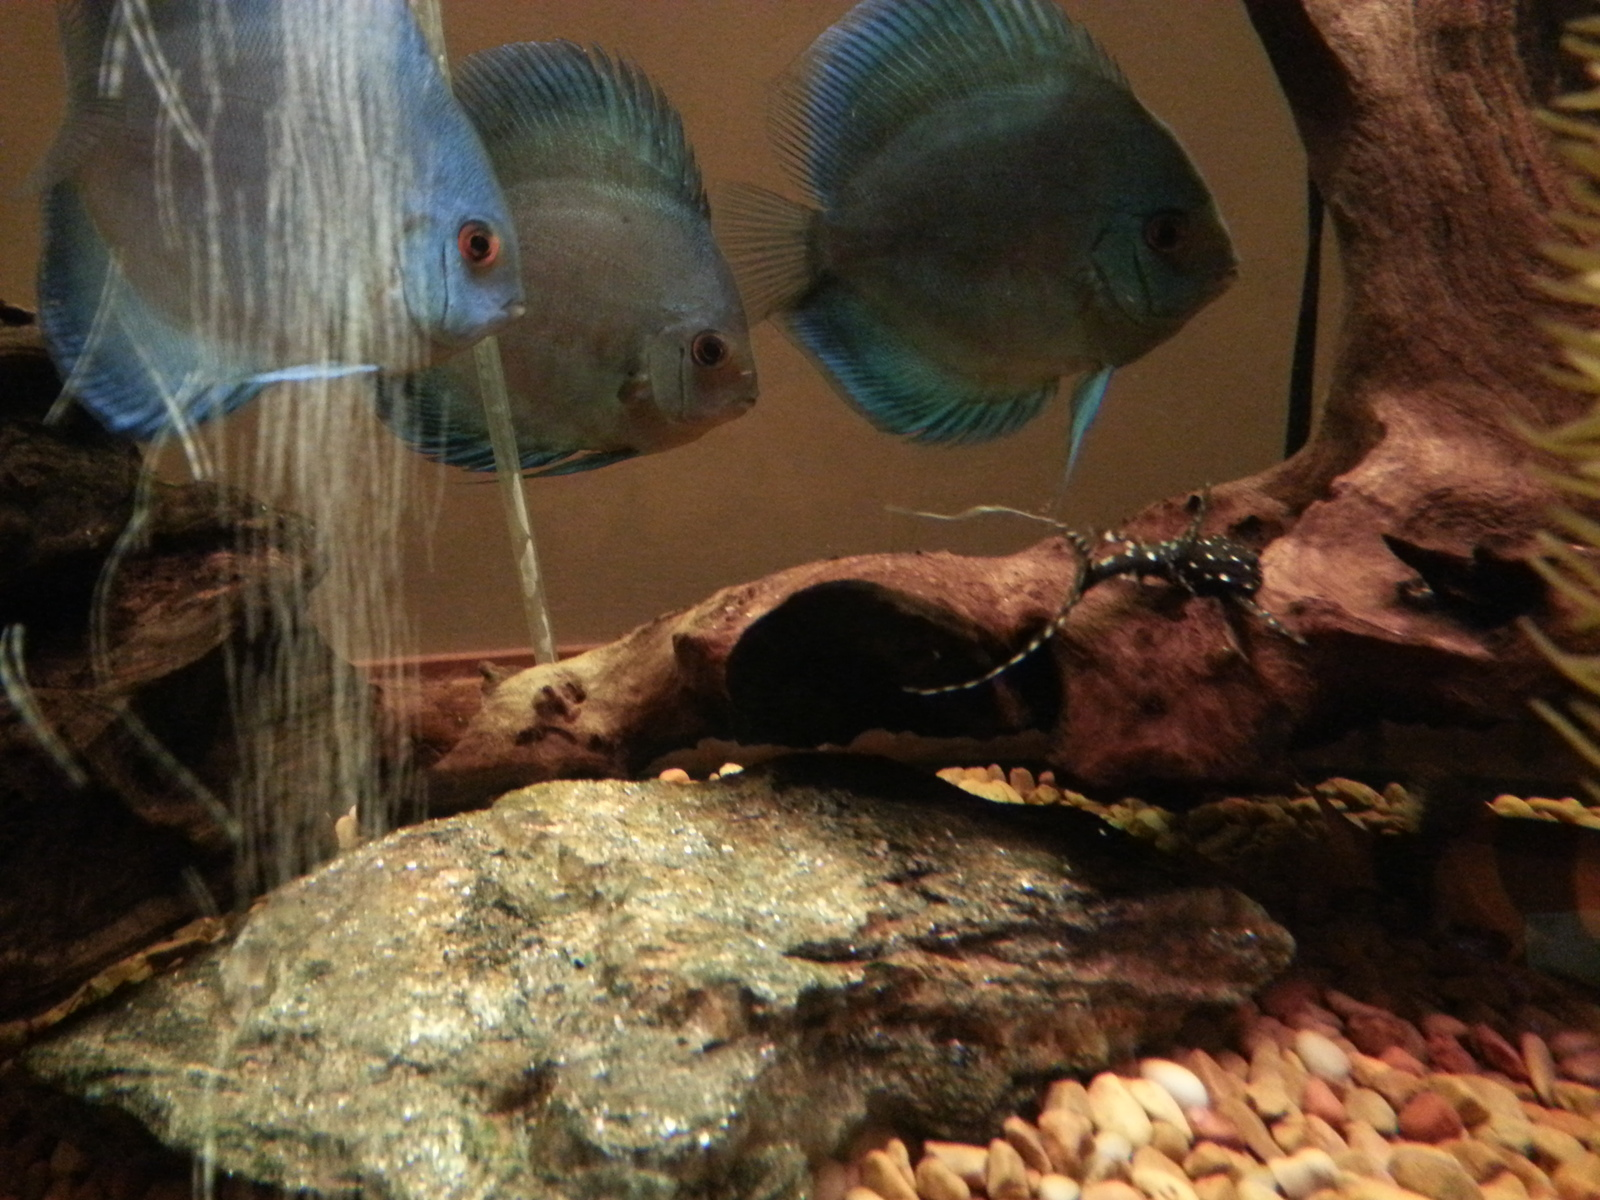 blue discus | by Sir Charles Buckingham the First